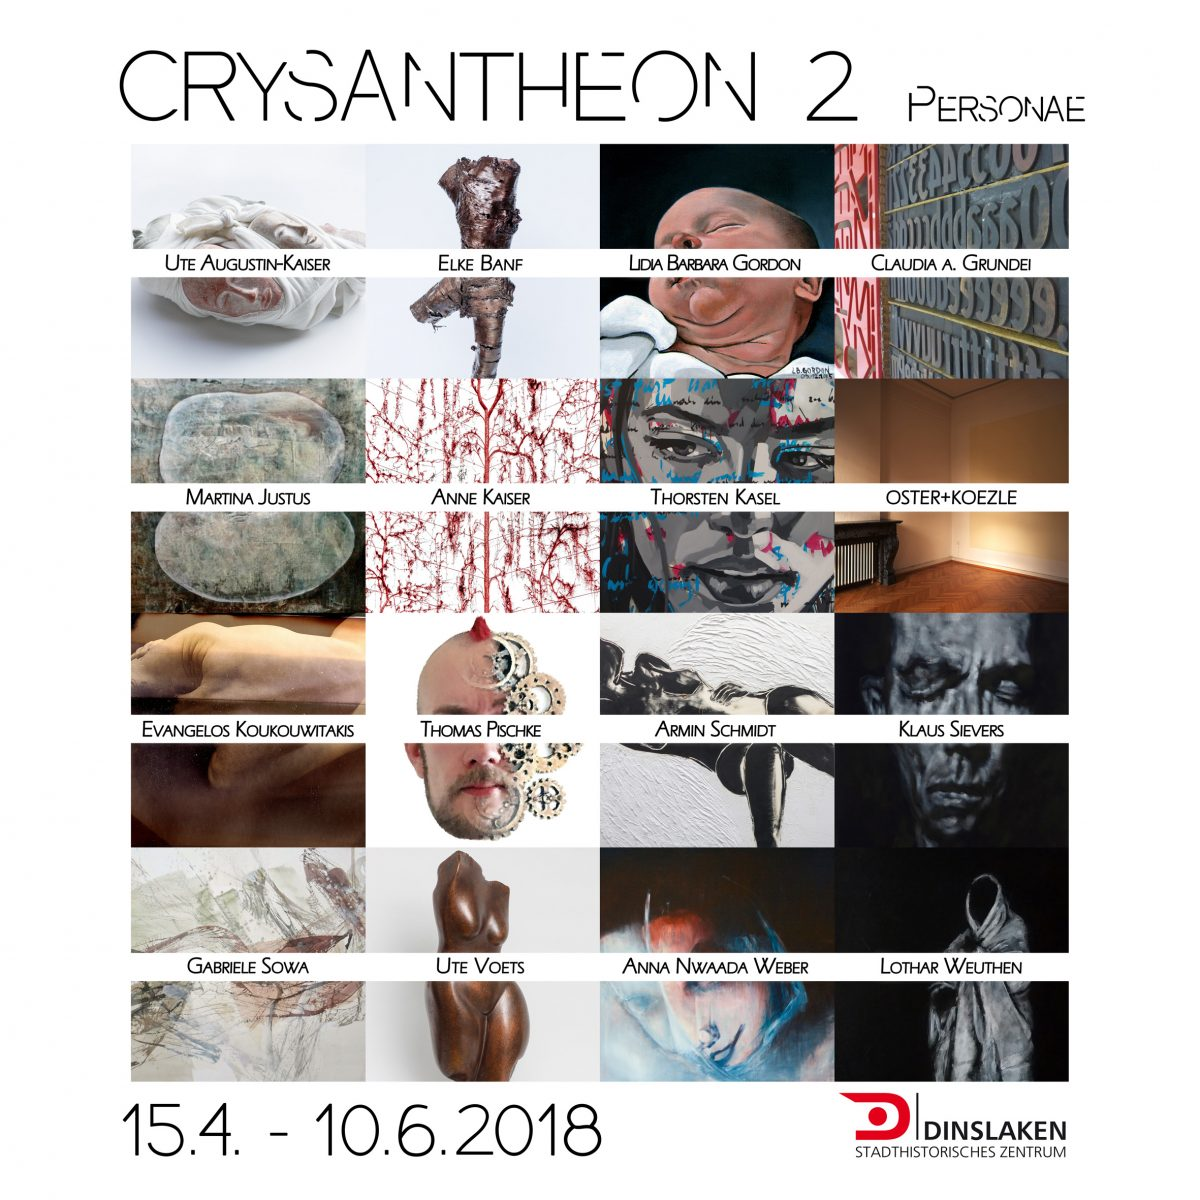 """CRYSANTHEON 2"""